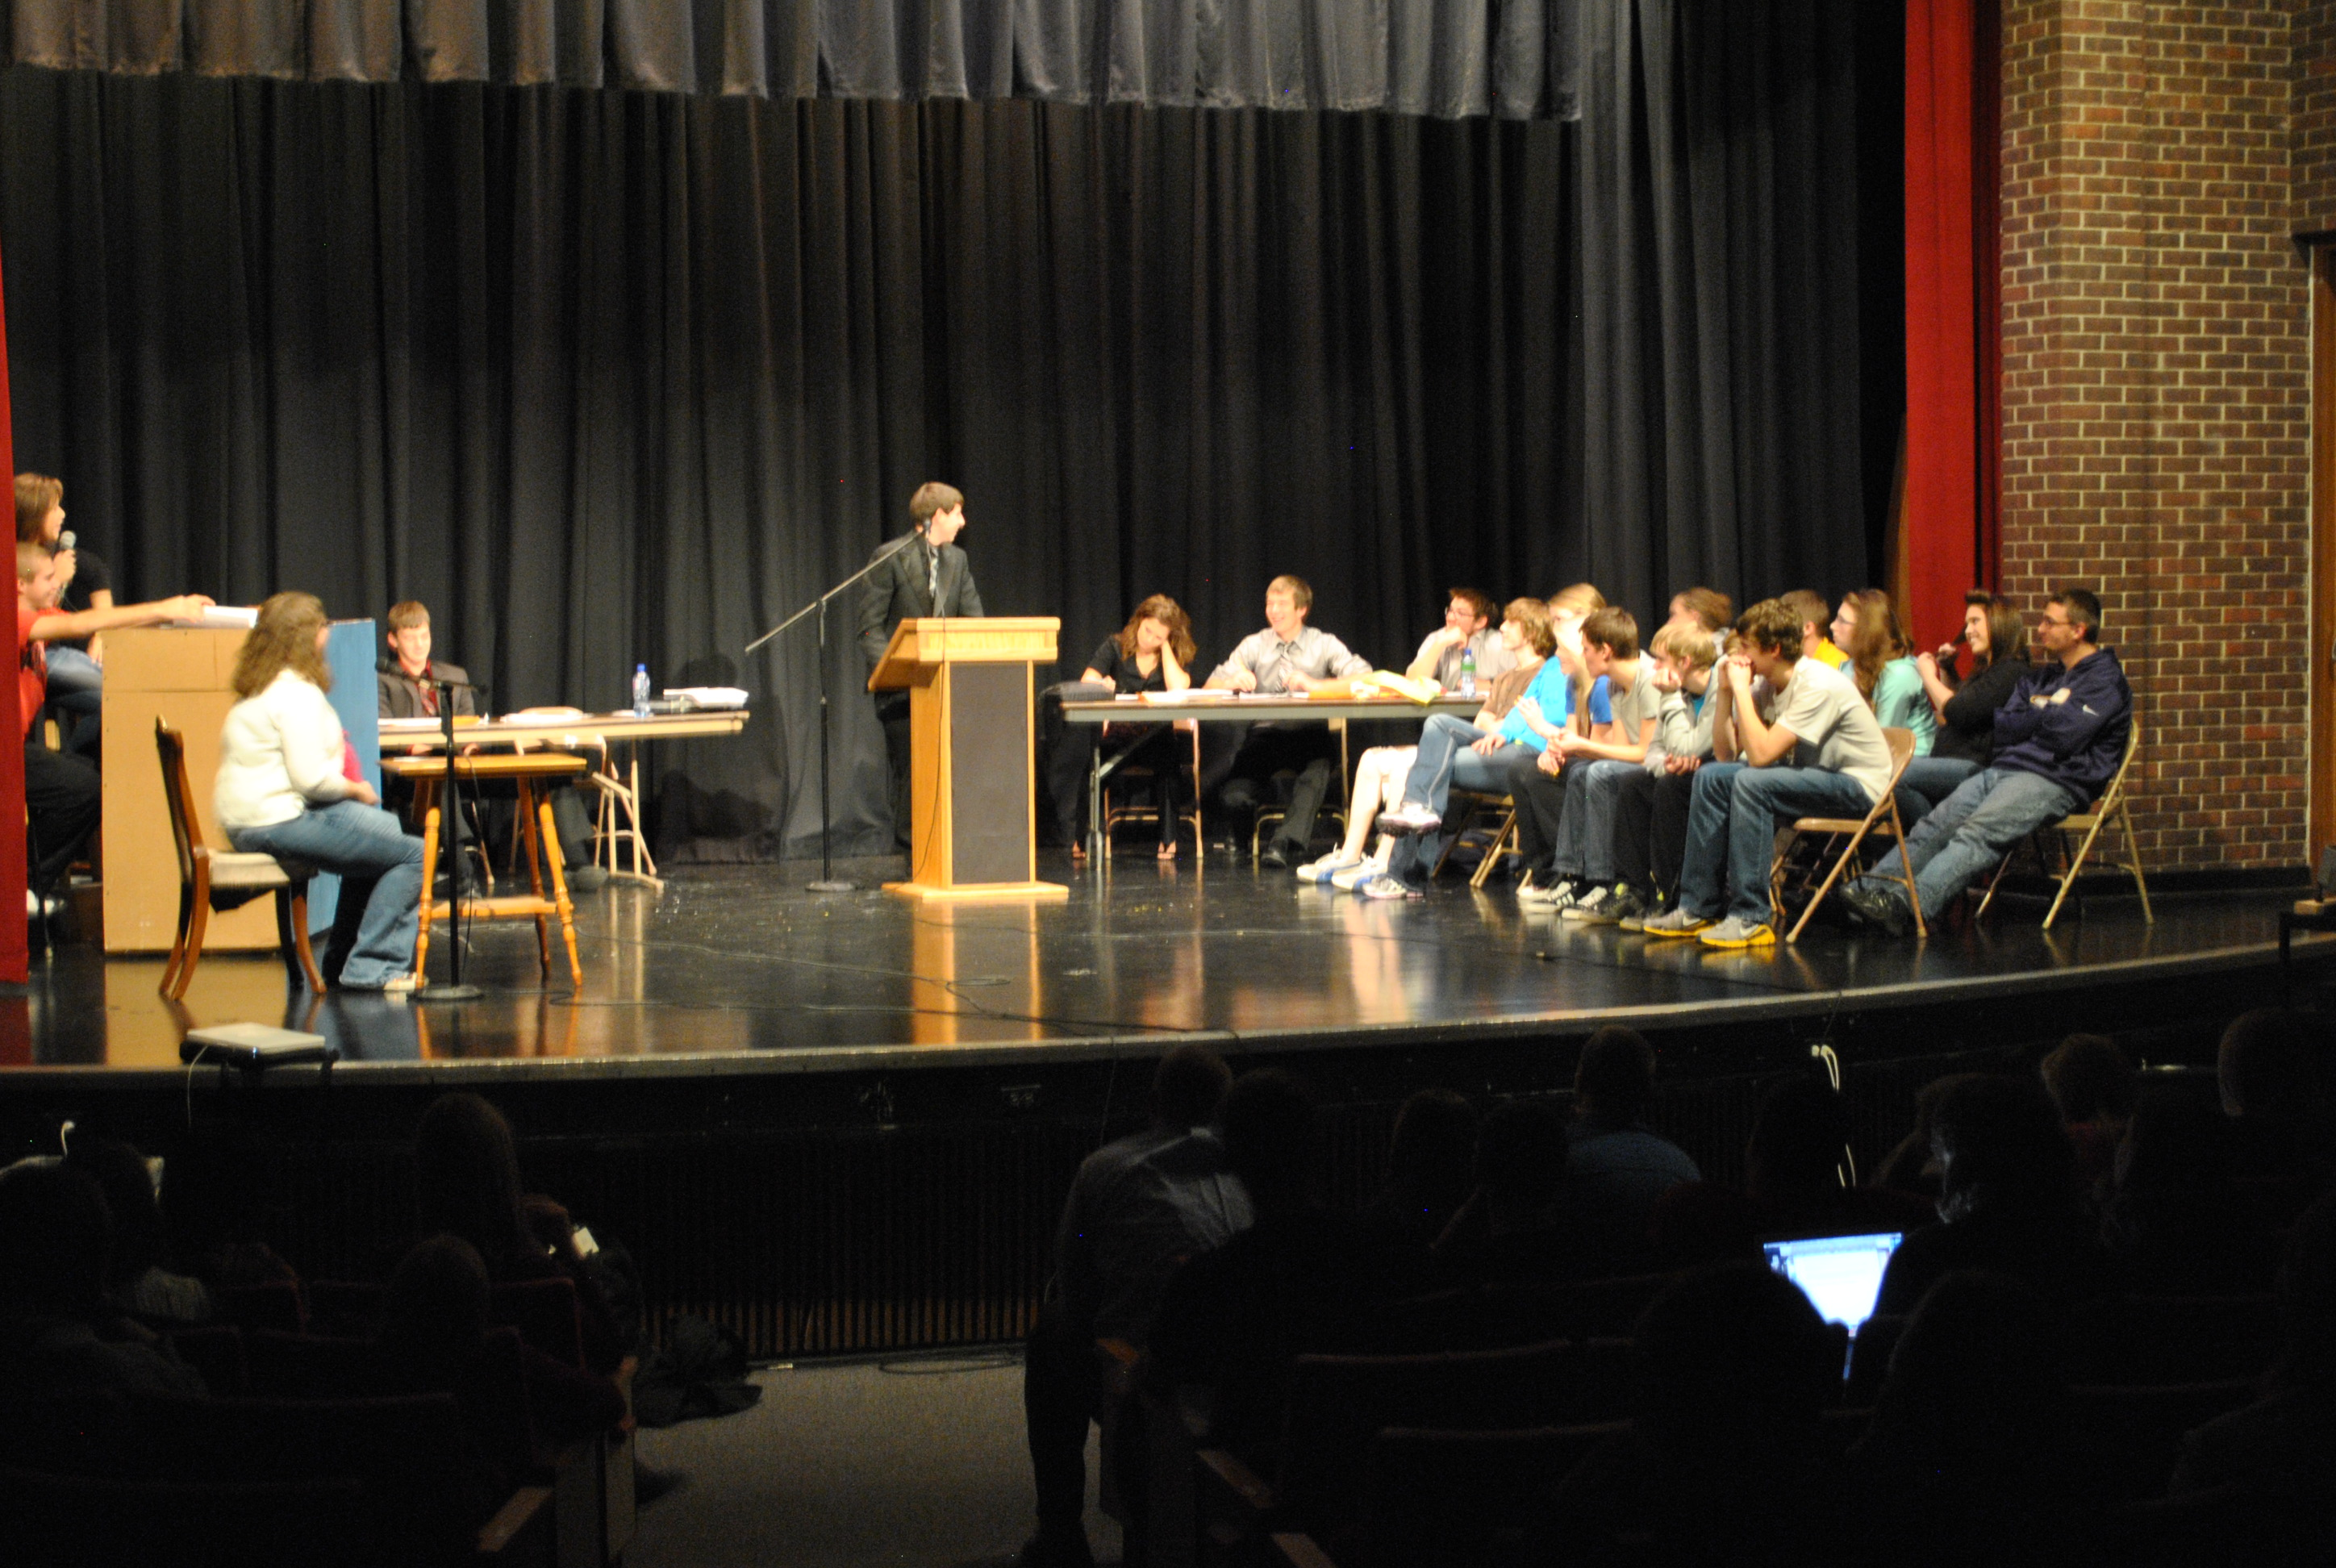 mock trial reflection Mock trial as presented on schoolhouseteacherscom by deborah burton, a homeschooling mother of two and a licensed attorney, covers topics such as the judicial branch of the government, the first amendment, contracts, criminal law, tax reform, and much more.